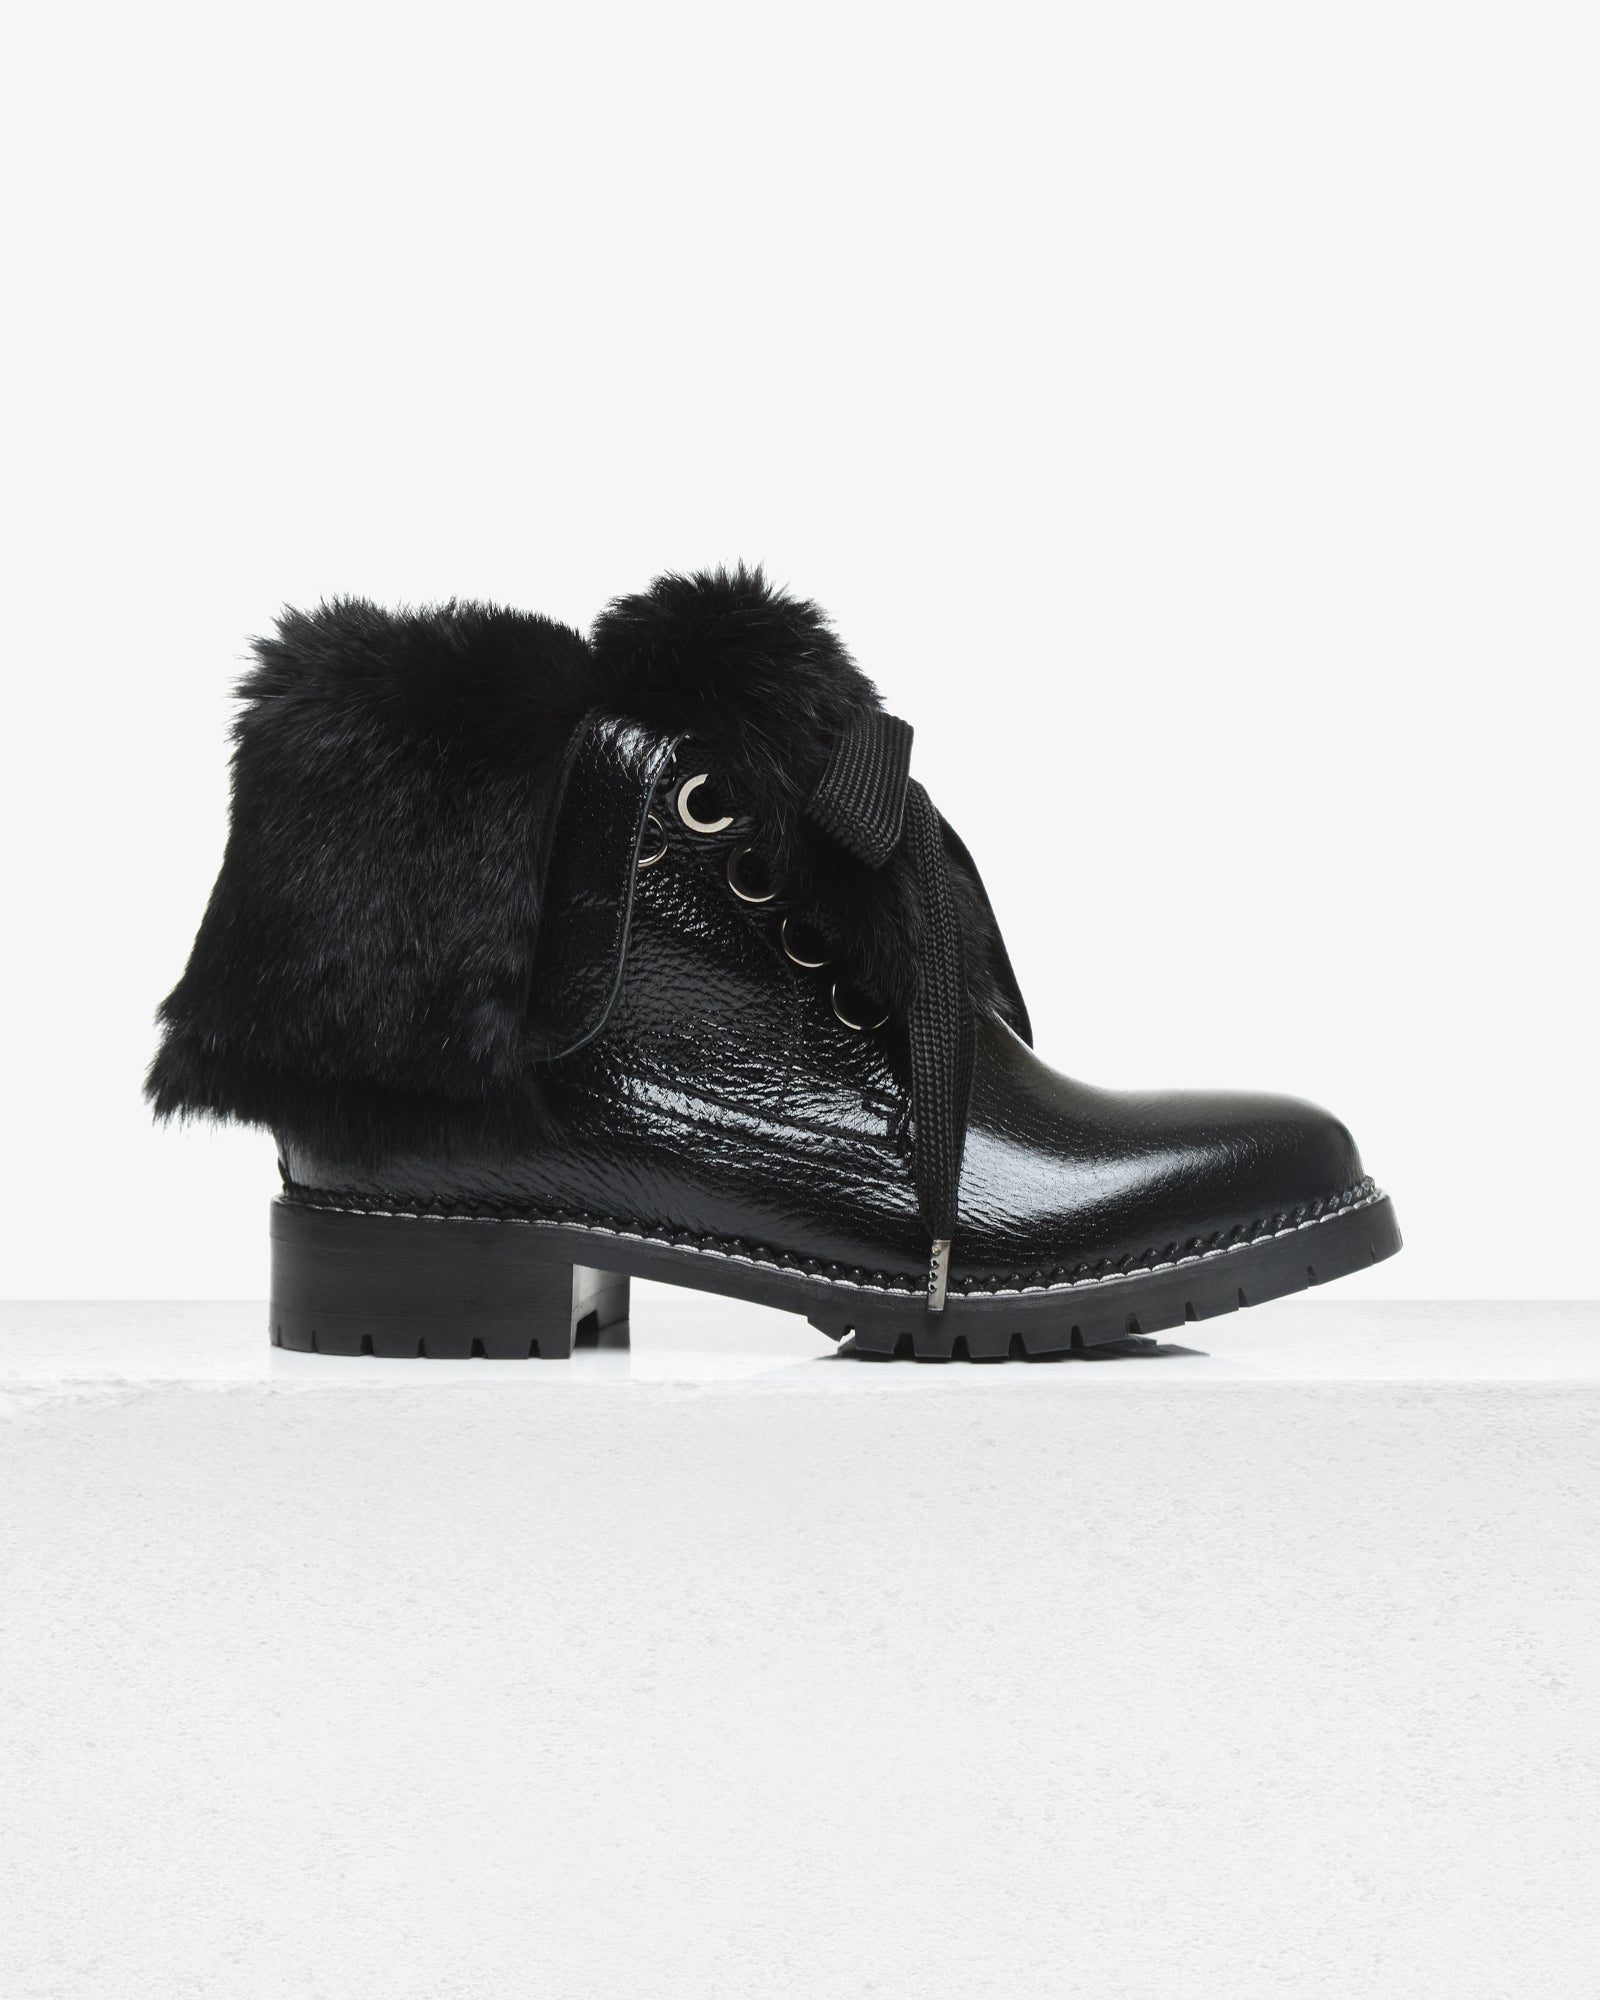 Trapper Boot Black Patent